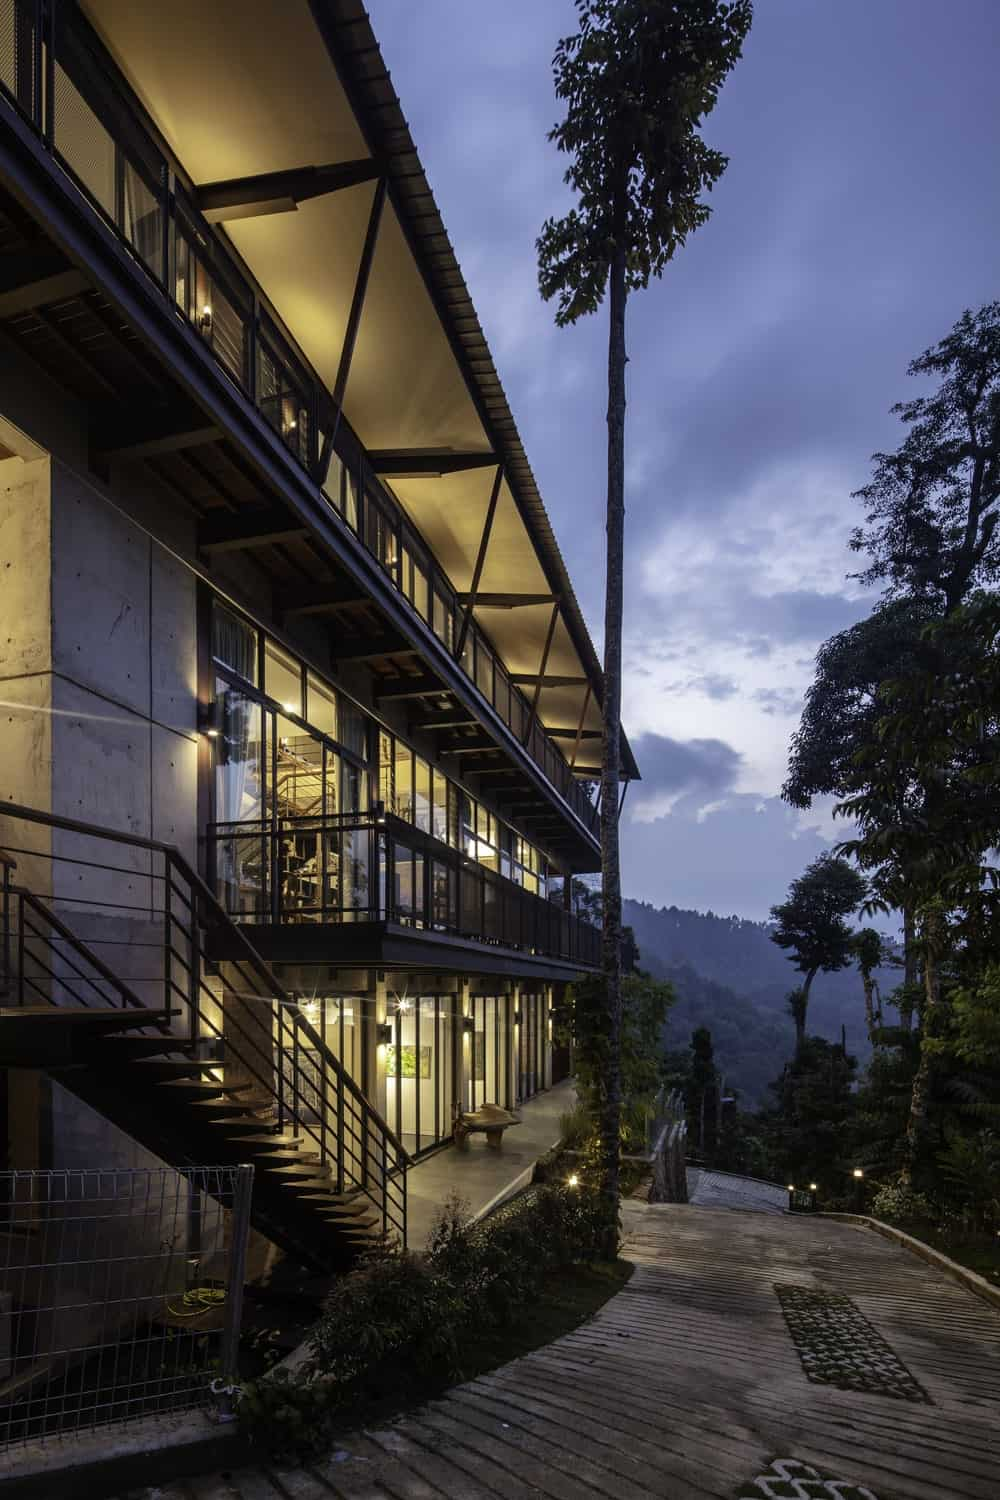 This nighttime view of the house shows the balconies that glow warmly from the interior lights that escape through.